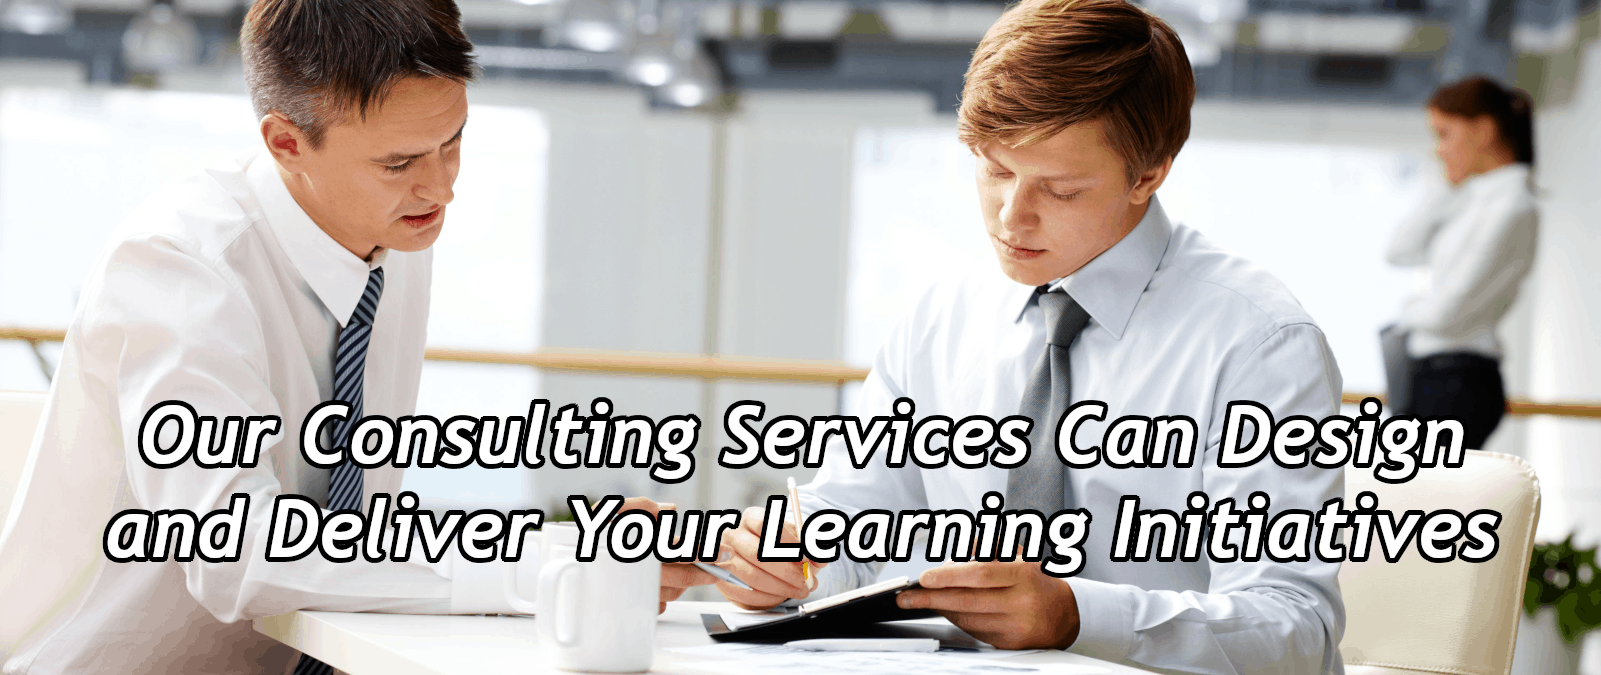 We can Design and Deliver your Learning Initiatives